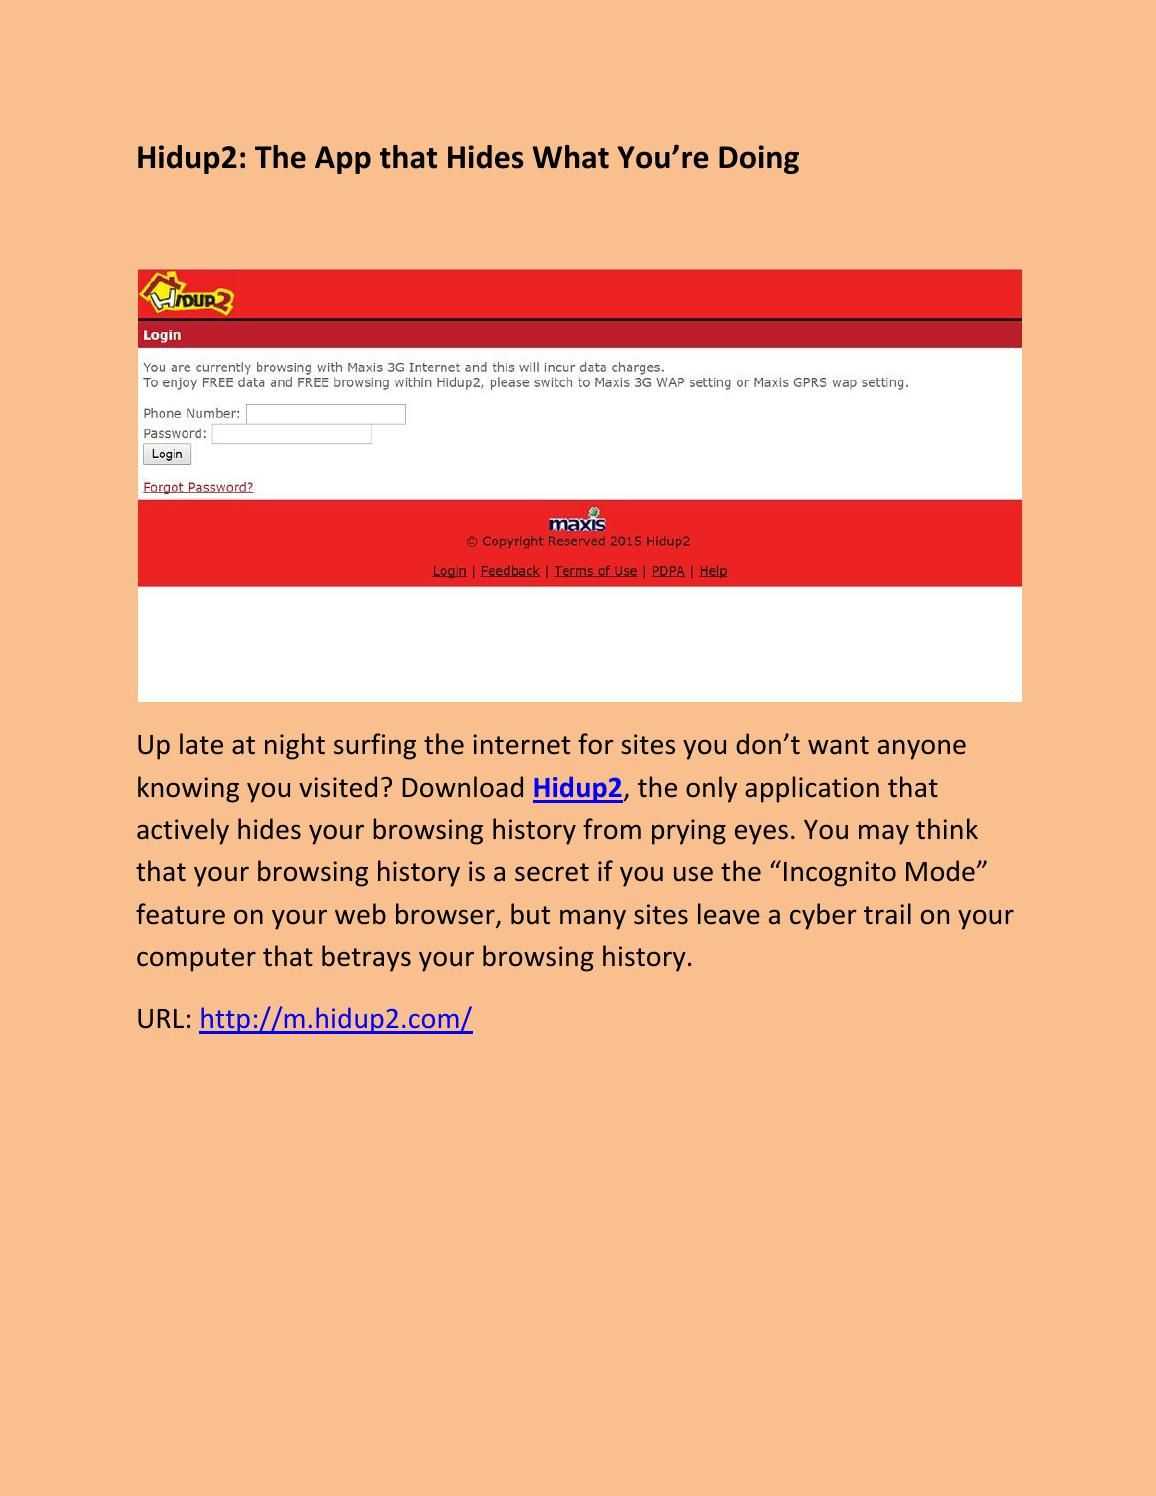 Hidup2 Keep Your Browsing History To Yourself M Hidup2 Com Browsing History App How To Know